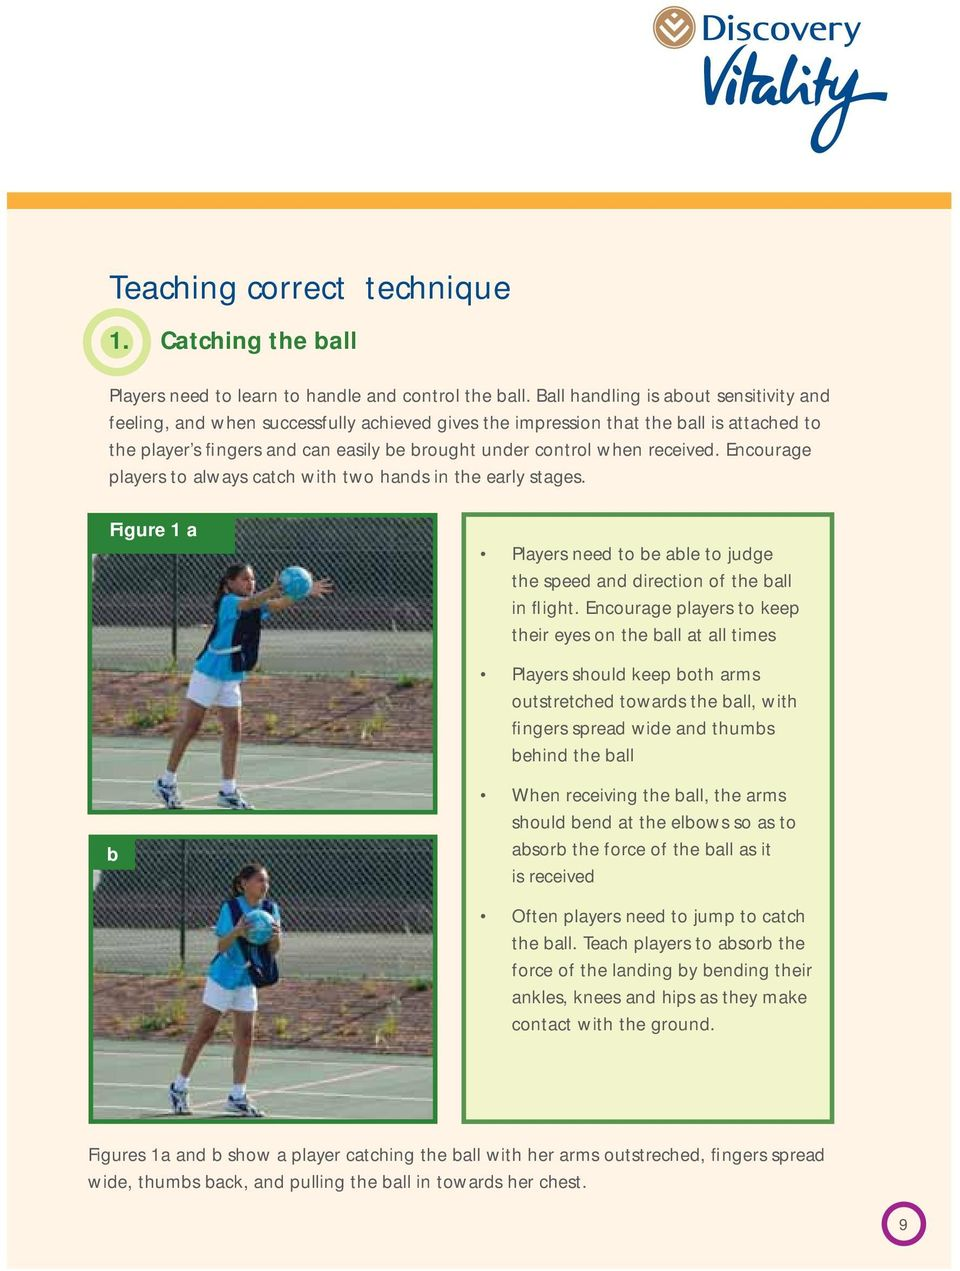 received. Encourage players to always catch with two hands in the early stages. Figure 1 a Players need to be able to judge the speed and direction of the ball in flight.